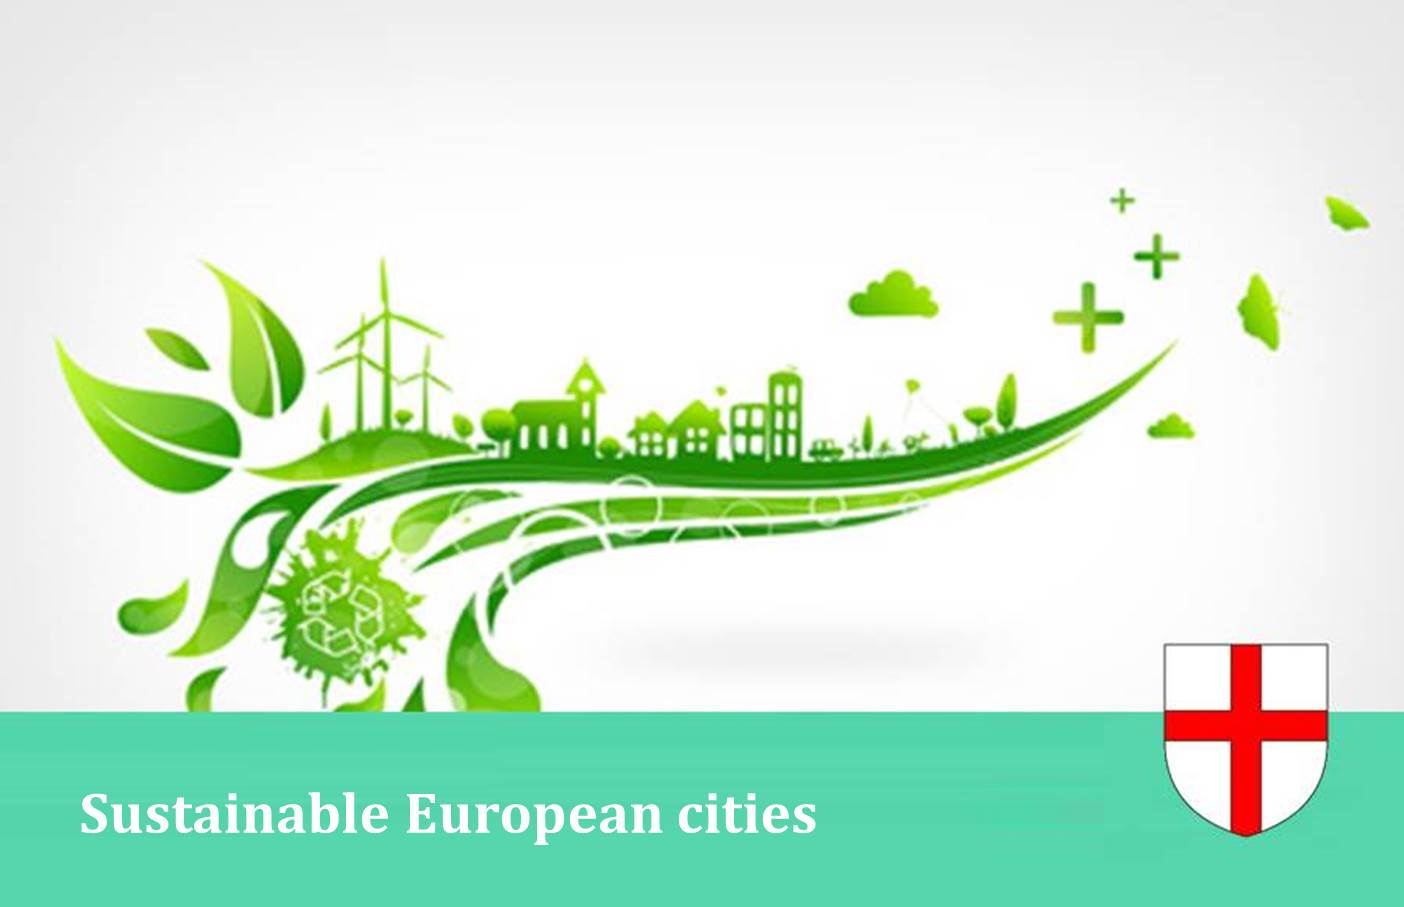 ... city in Europe | Energy 3.0 : the webmagazine about energy efficiency